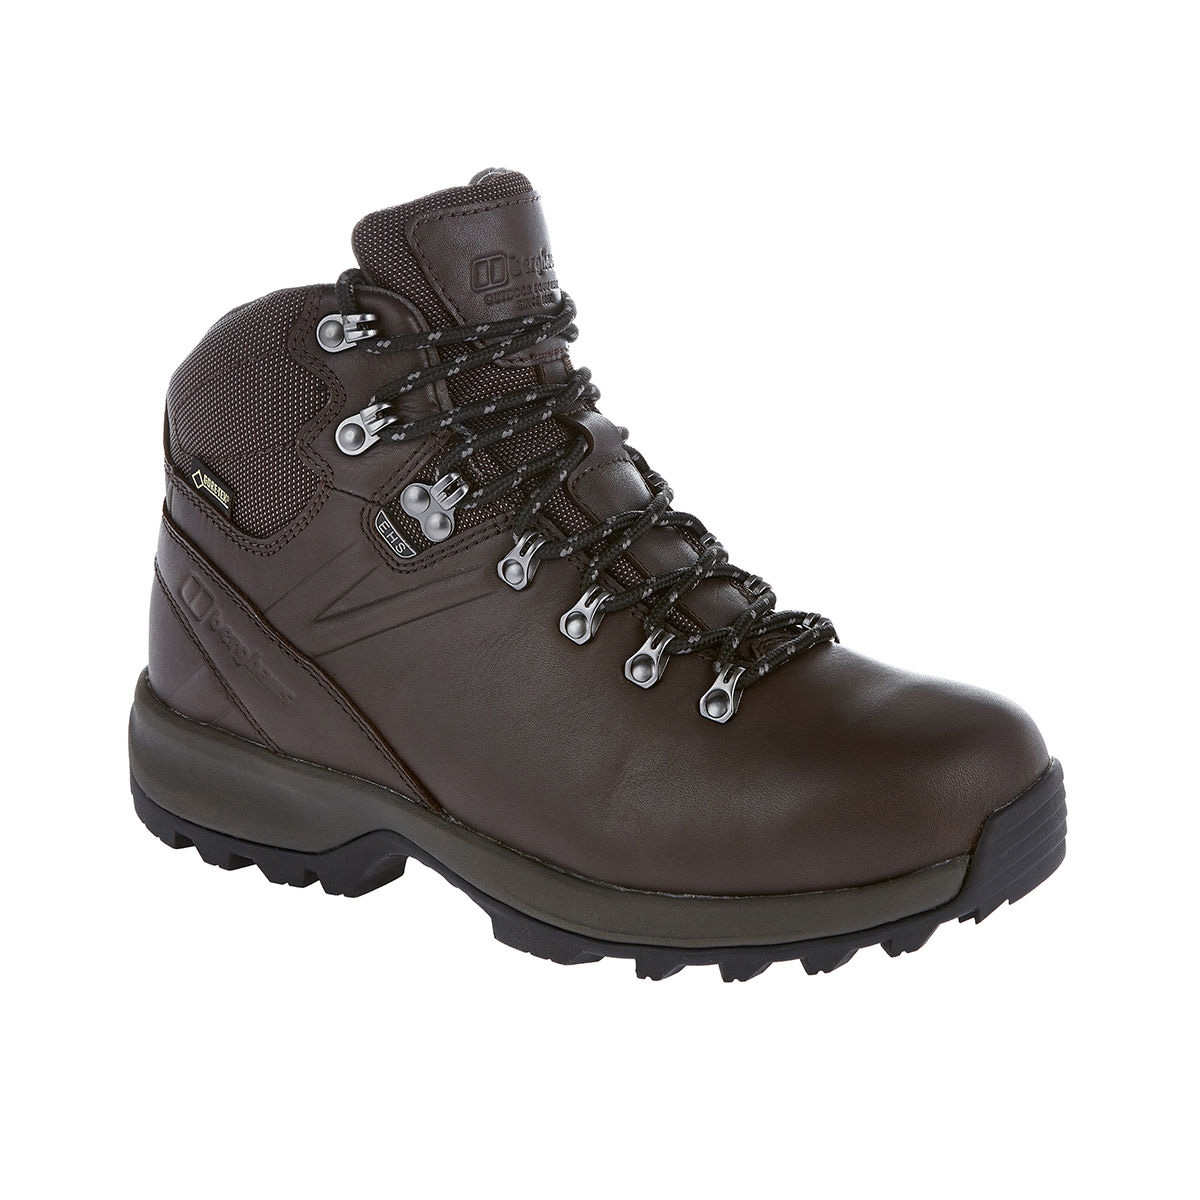 Image of Berghaus Explorer Ridge Plus GTX Walking Boots (Women s) - Brown    Dark cb7dce657